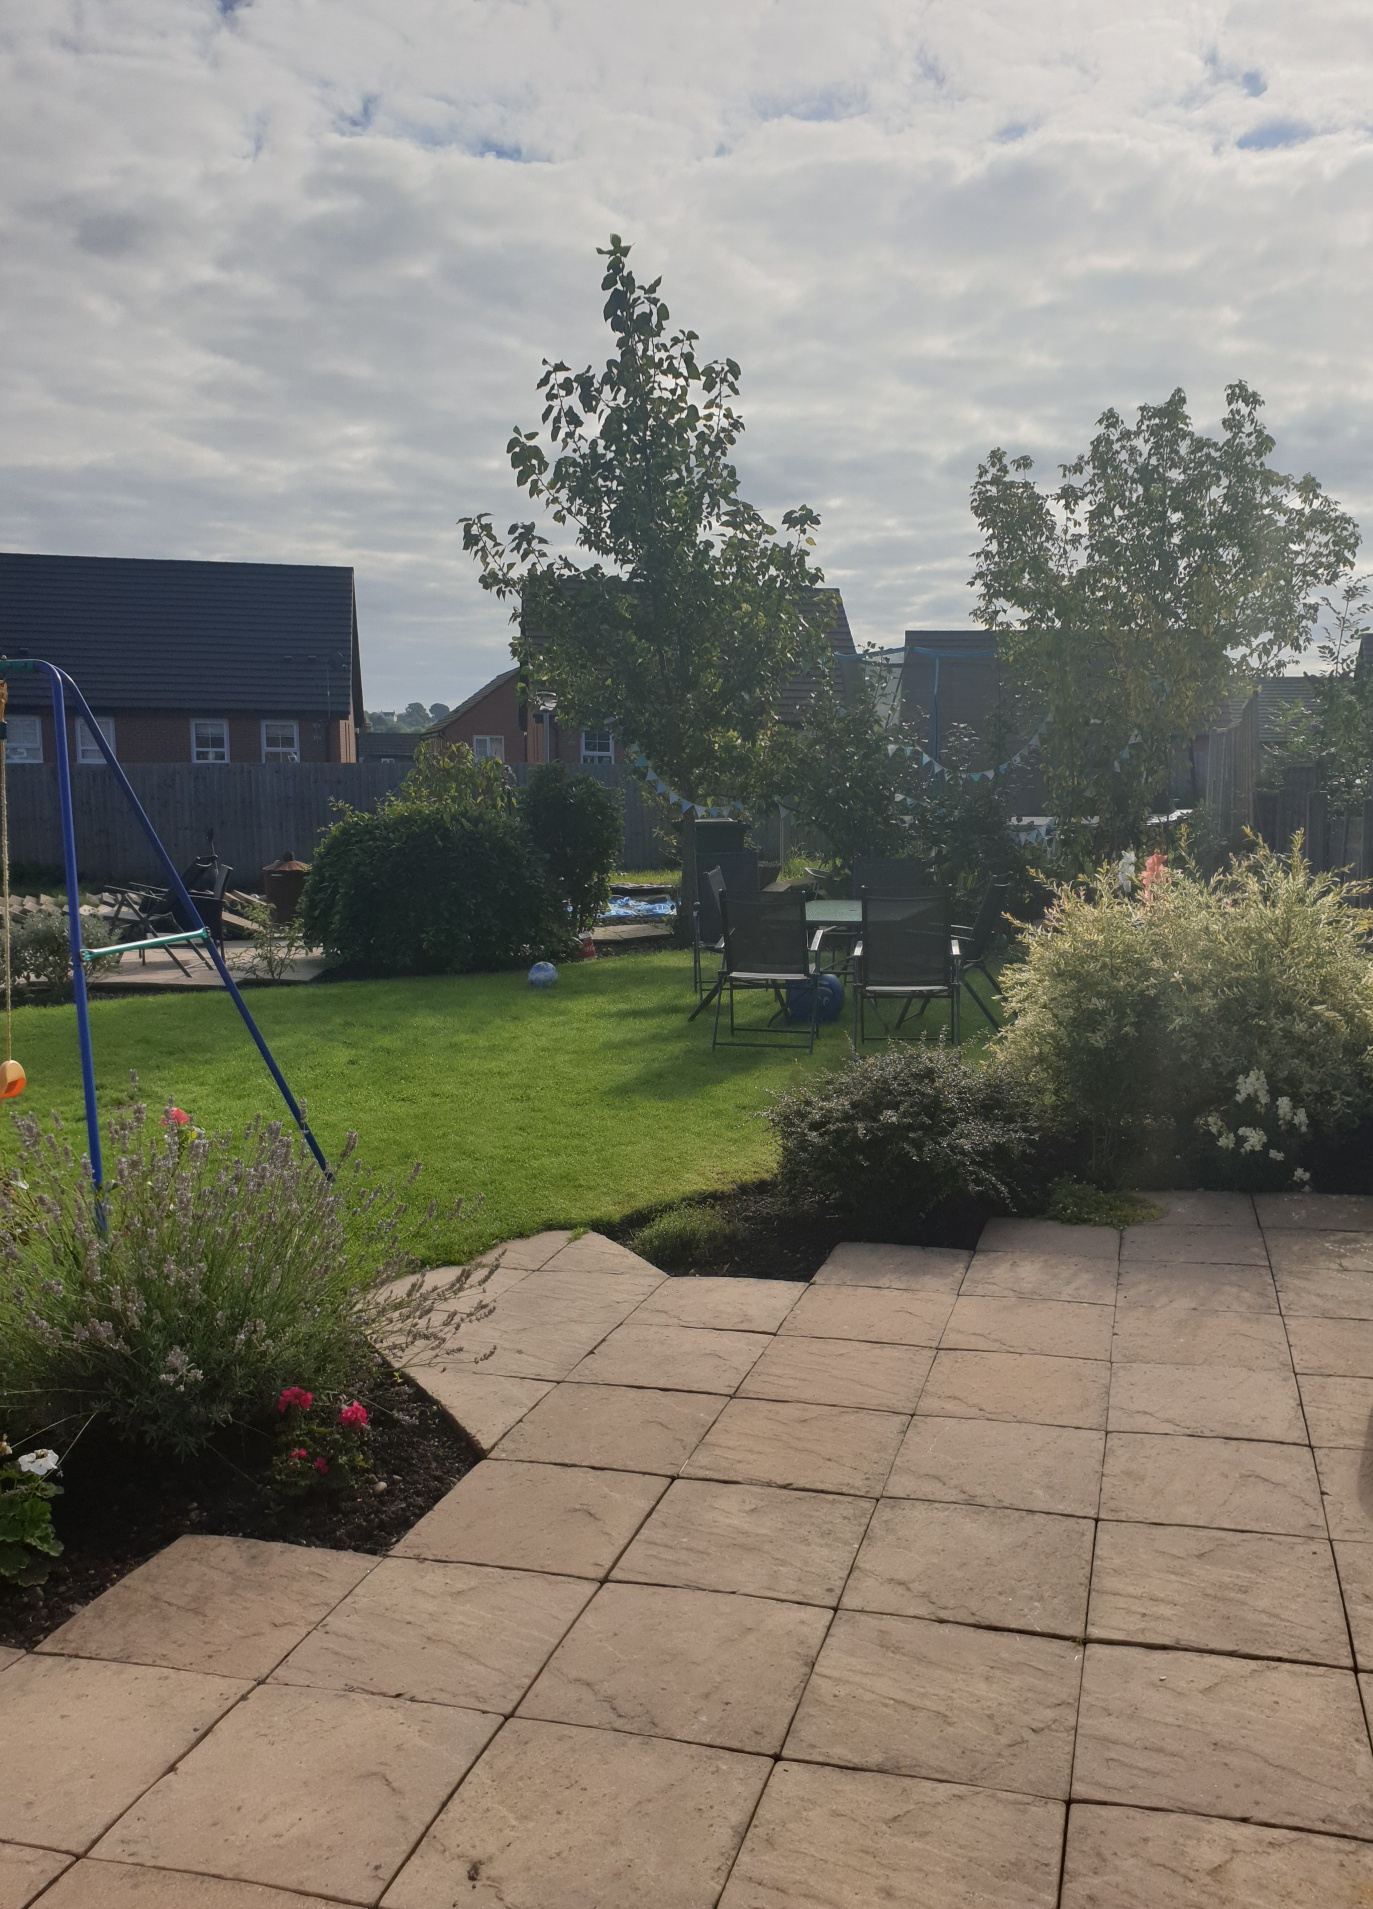 A photograph of a back garden, with a paved area surrounded by bushes and plants in the foreground, and a lawn in the background. A child's swing can be seen to the left.